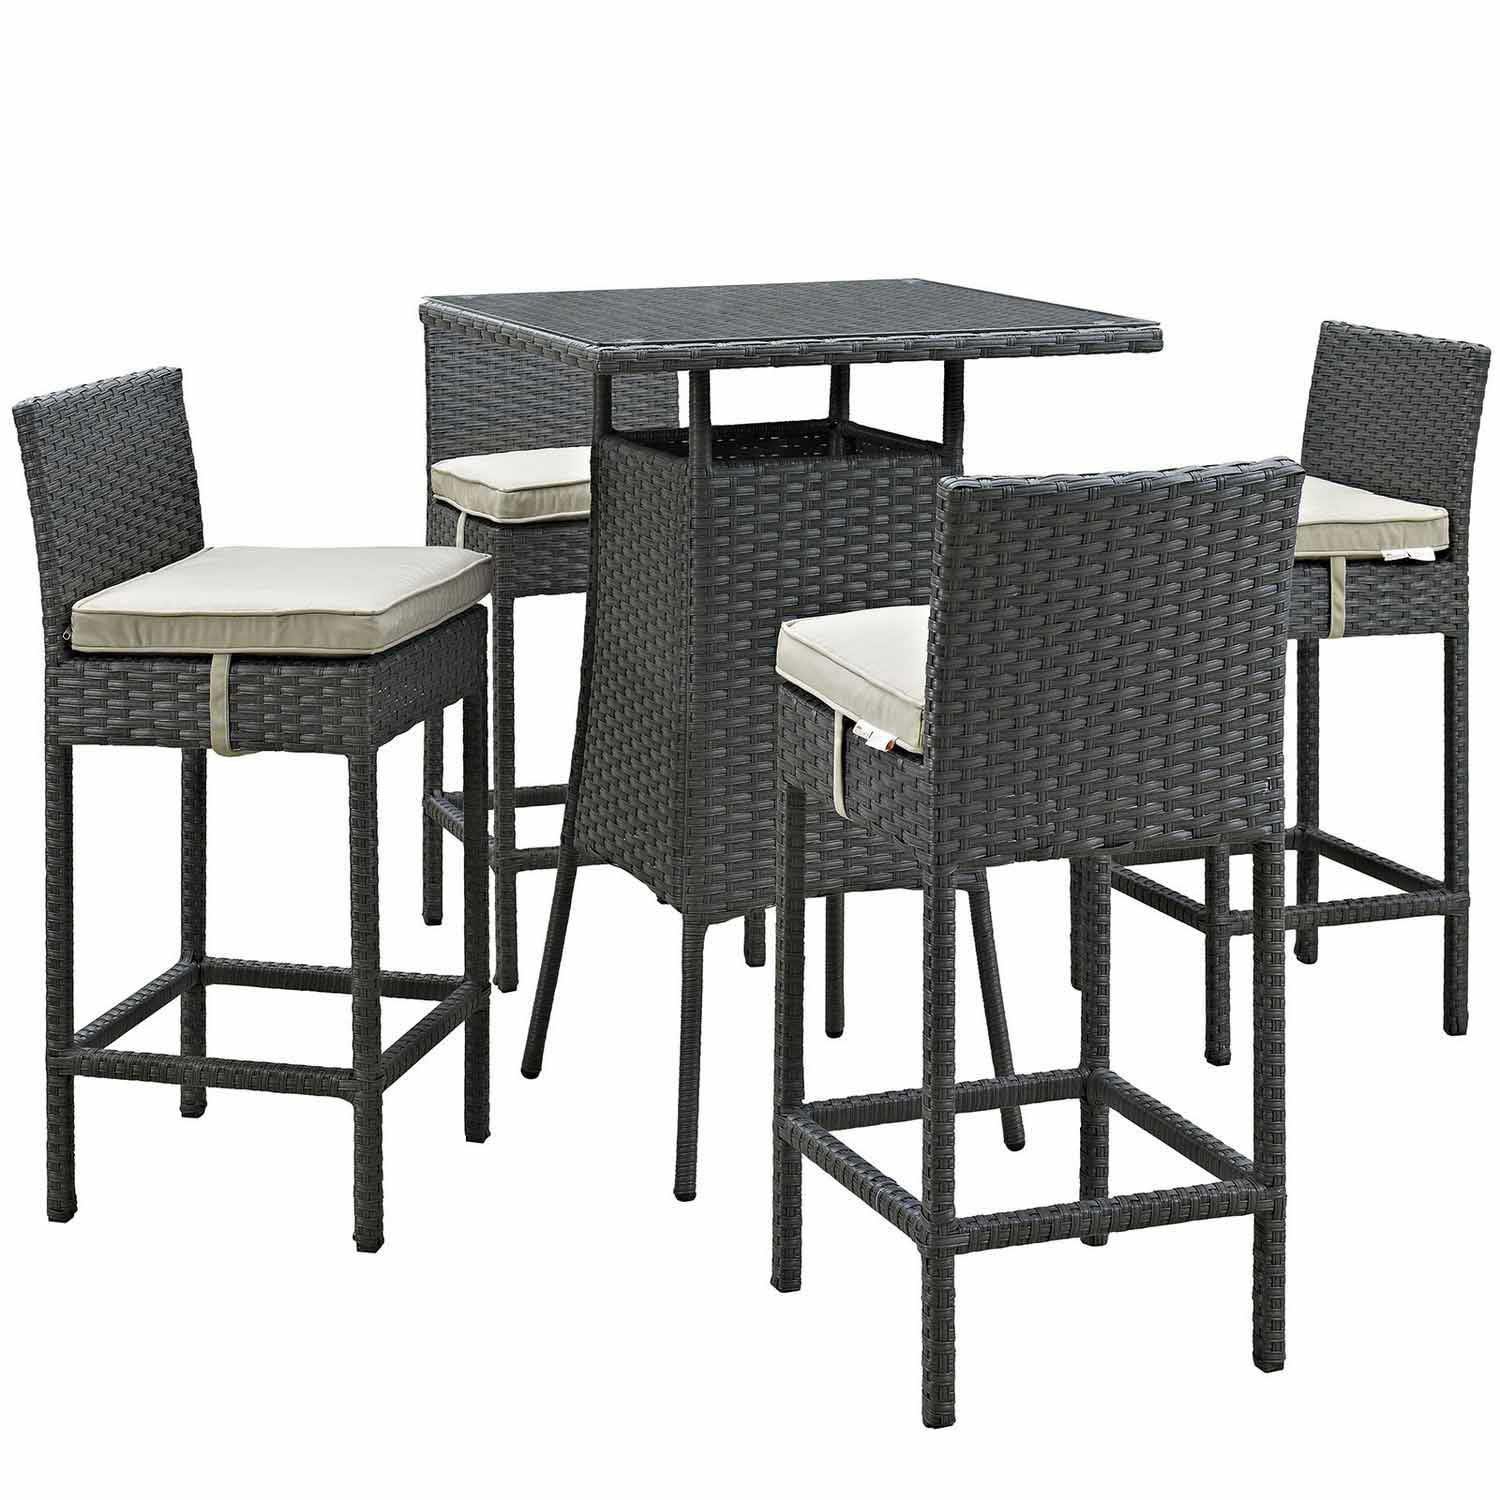 Modway Sojourn 5 Piece Outdoor Patio Sunbrella Pub Set - Antique Canvas Beige